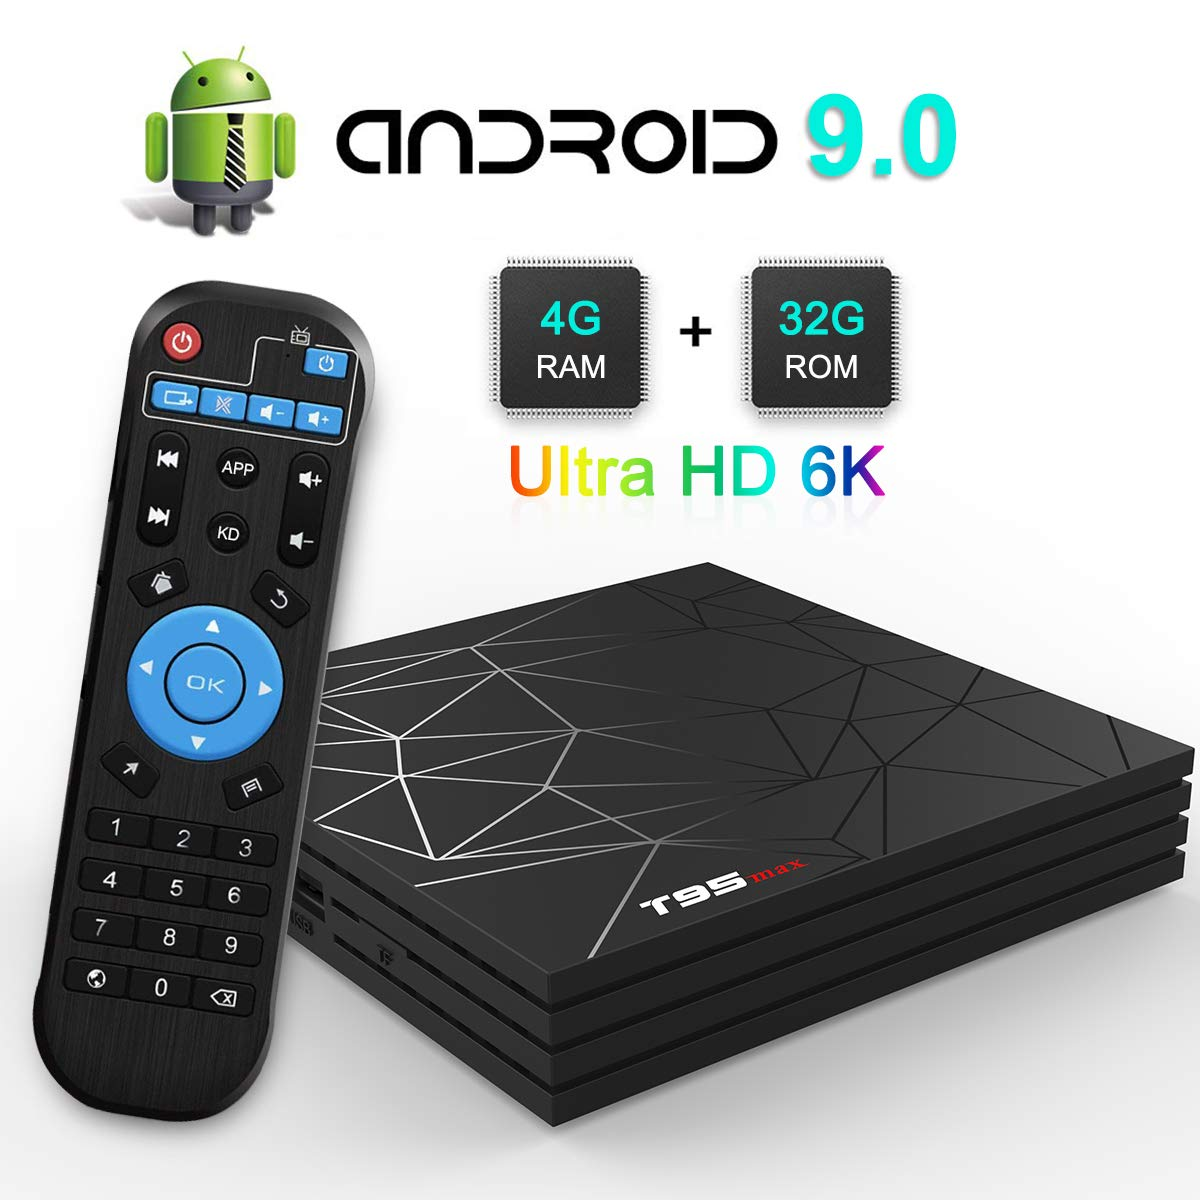 TV Box, TUREWELL T95 Max Android 9.0 TV Box Chip H6 Quad-core Cortex-A53 4GB RAM 32GB ROM Smart TV Box Support 3D 6K Ultra HD H.265 2.4GHz WiFi Ethernet HDMI [2019 Newest] by TUREWELL